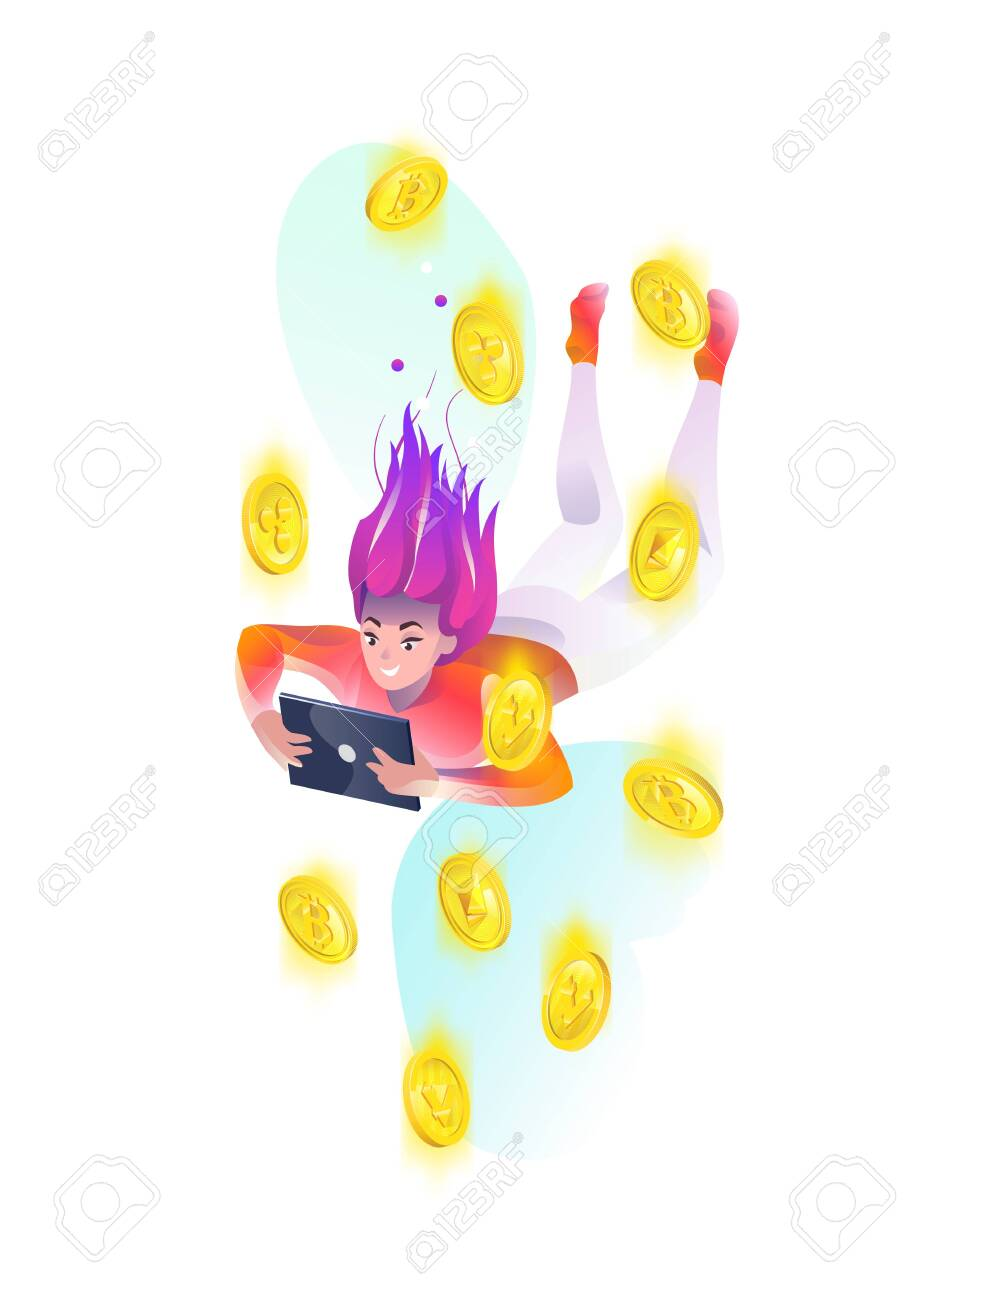 Concept in flat style with woman falling down with tablet and cryptocurrency. Internet freedom, free wifi, on-line, reading. Vector illustration. - 136053074